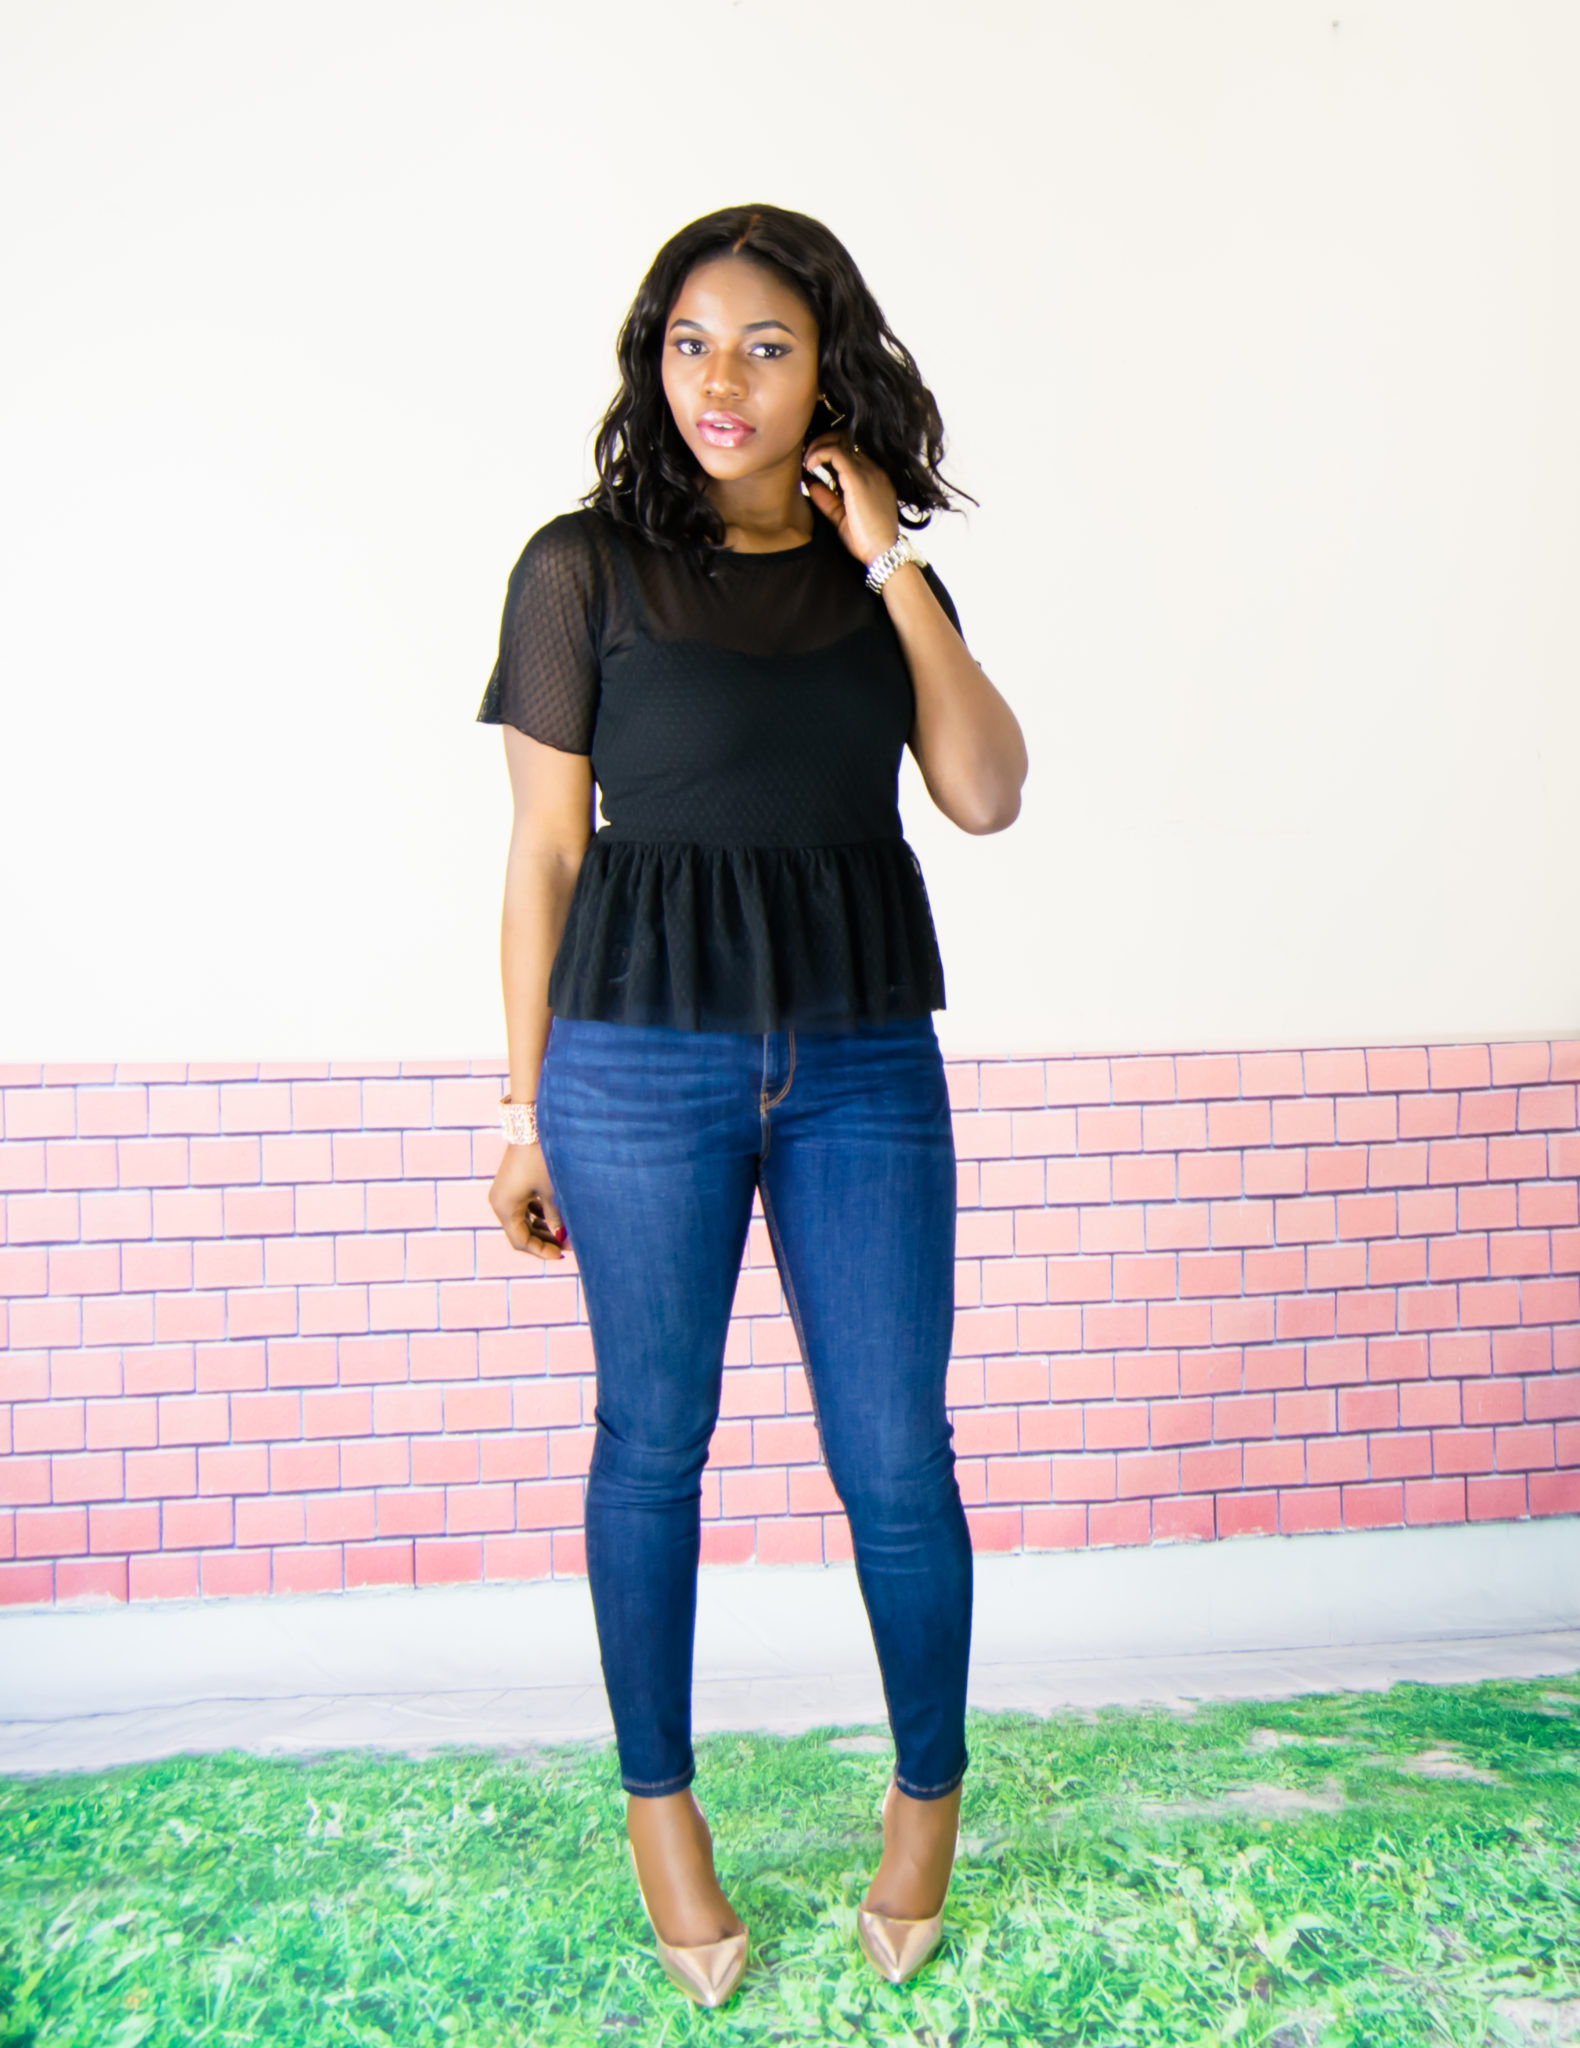 sheer peplum top on high-waisted jeans - WishfulElegance